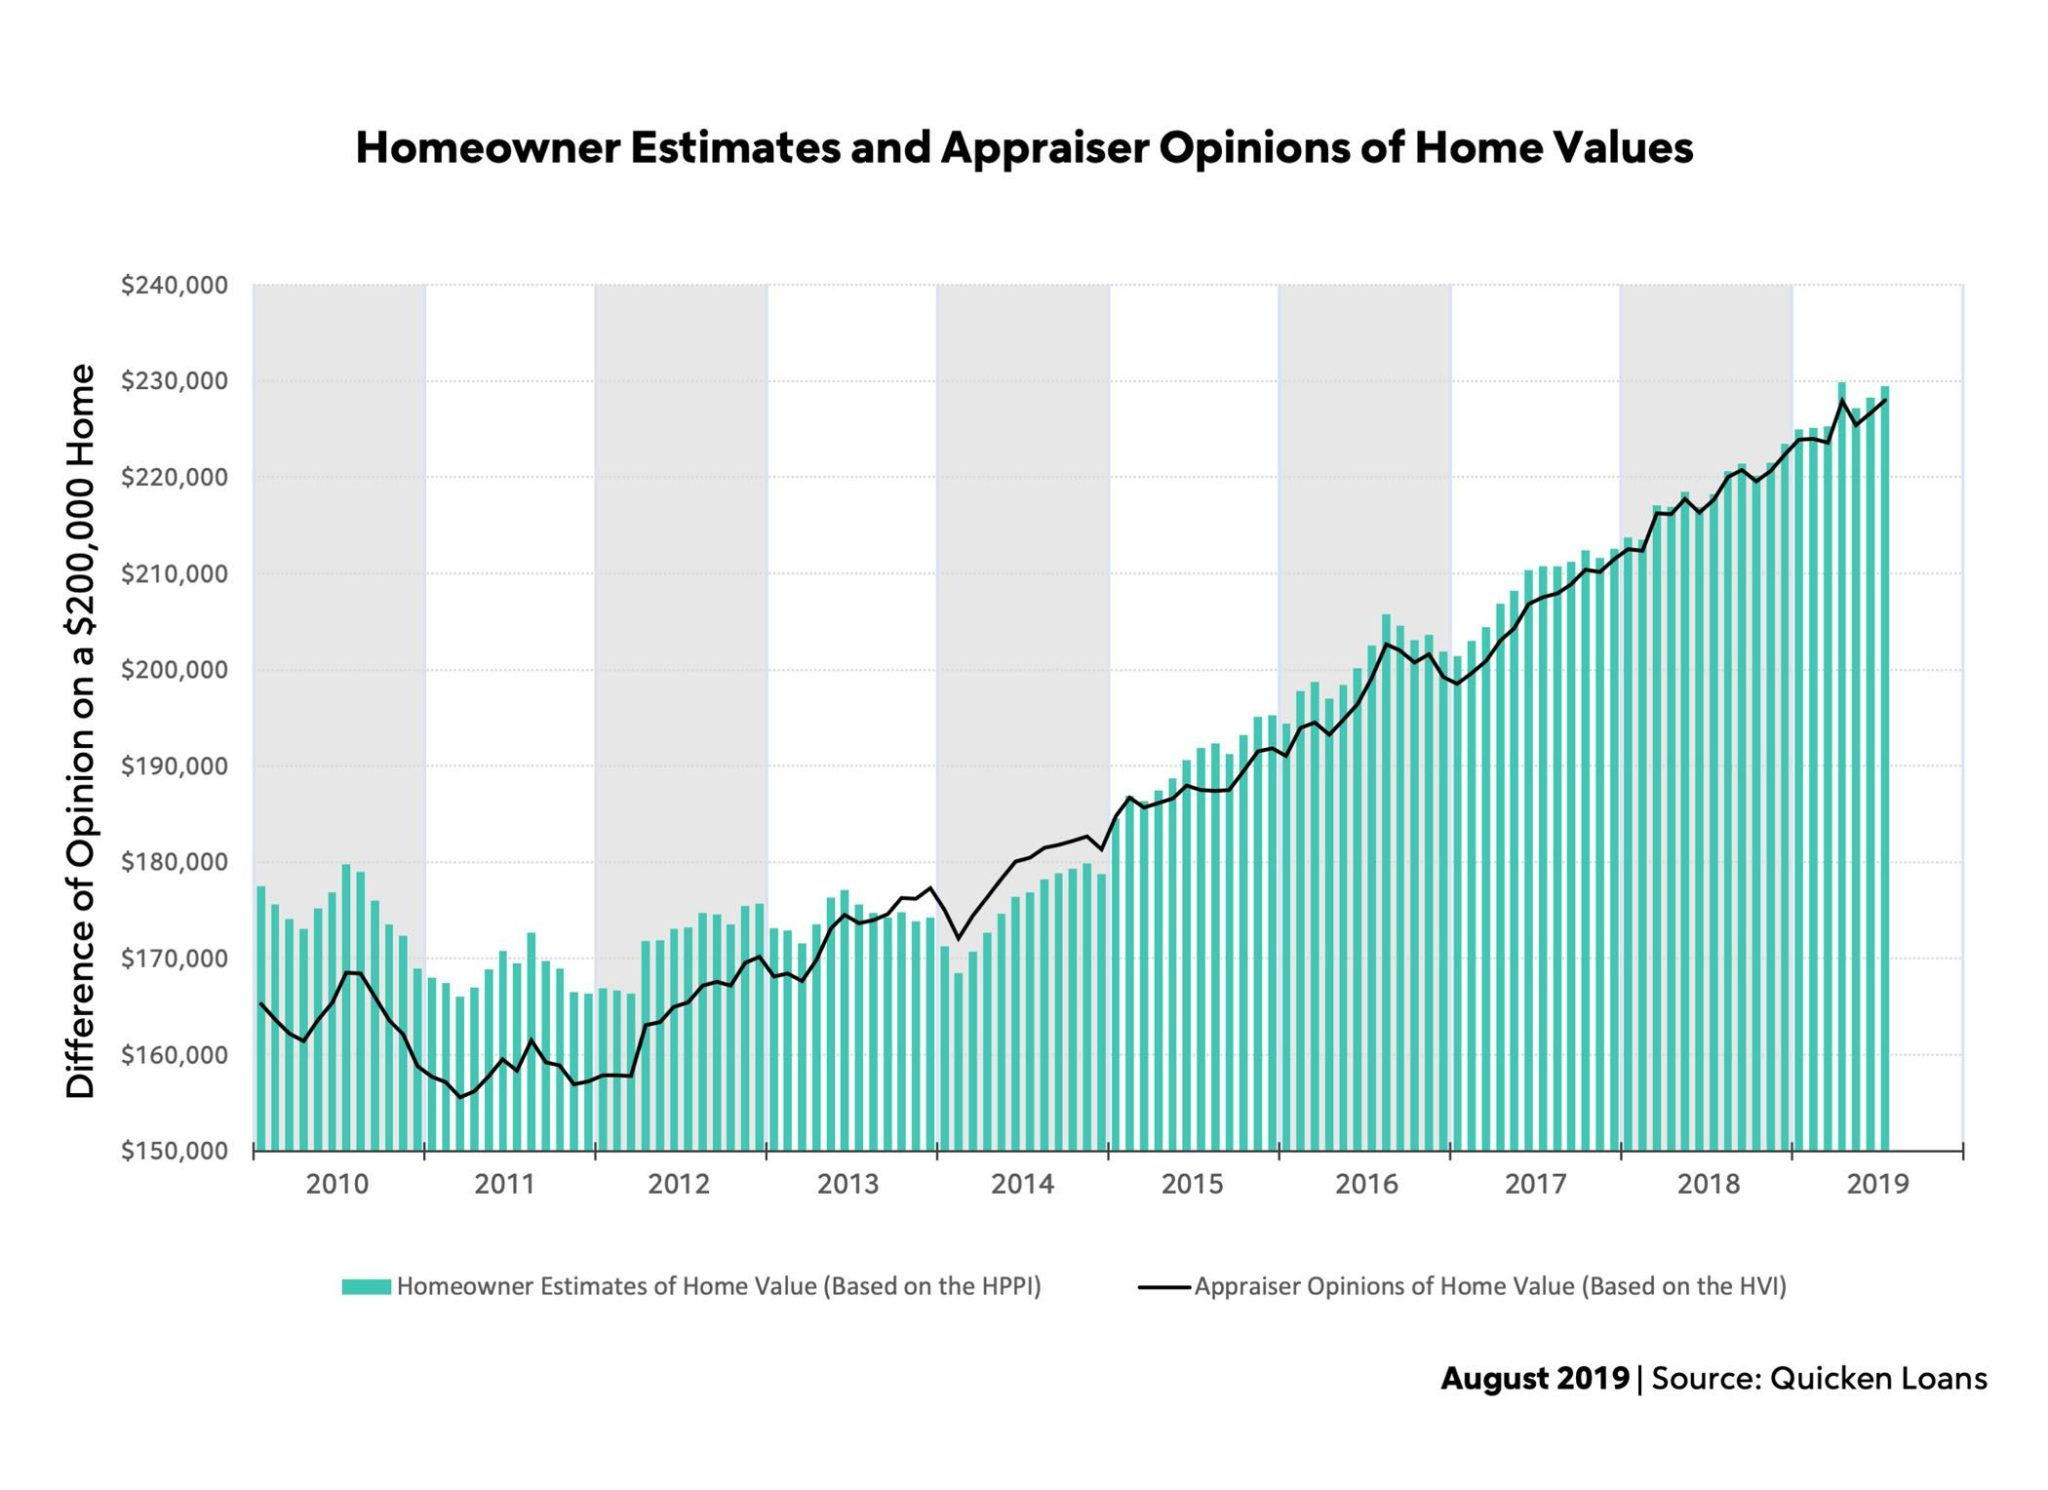 Homeowner Estimates and Appraiser Opinions of Home Values, August 2019.